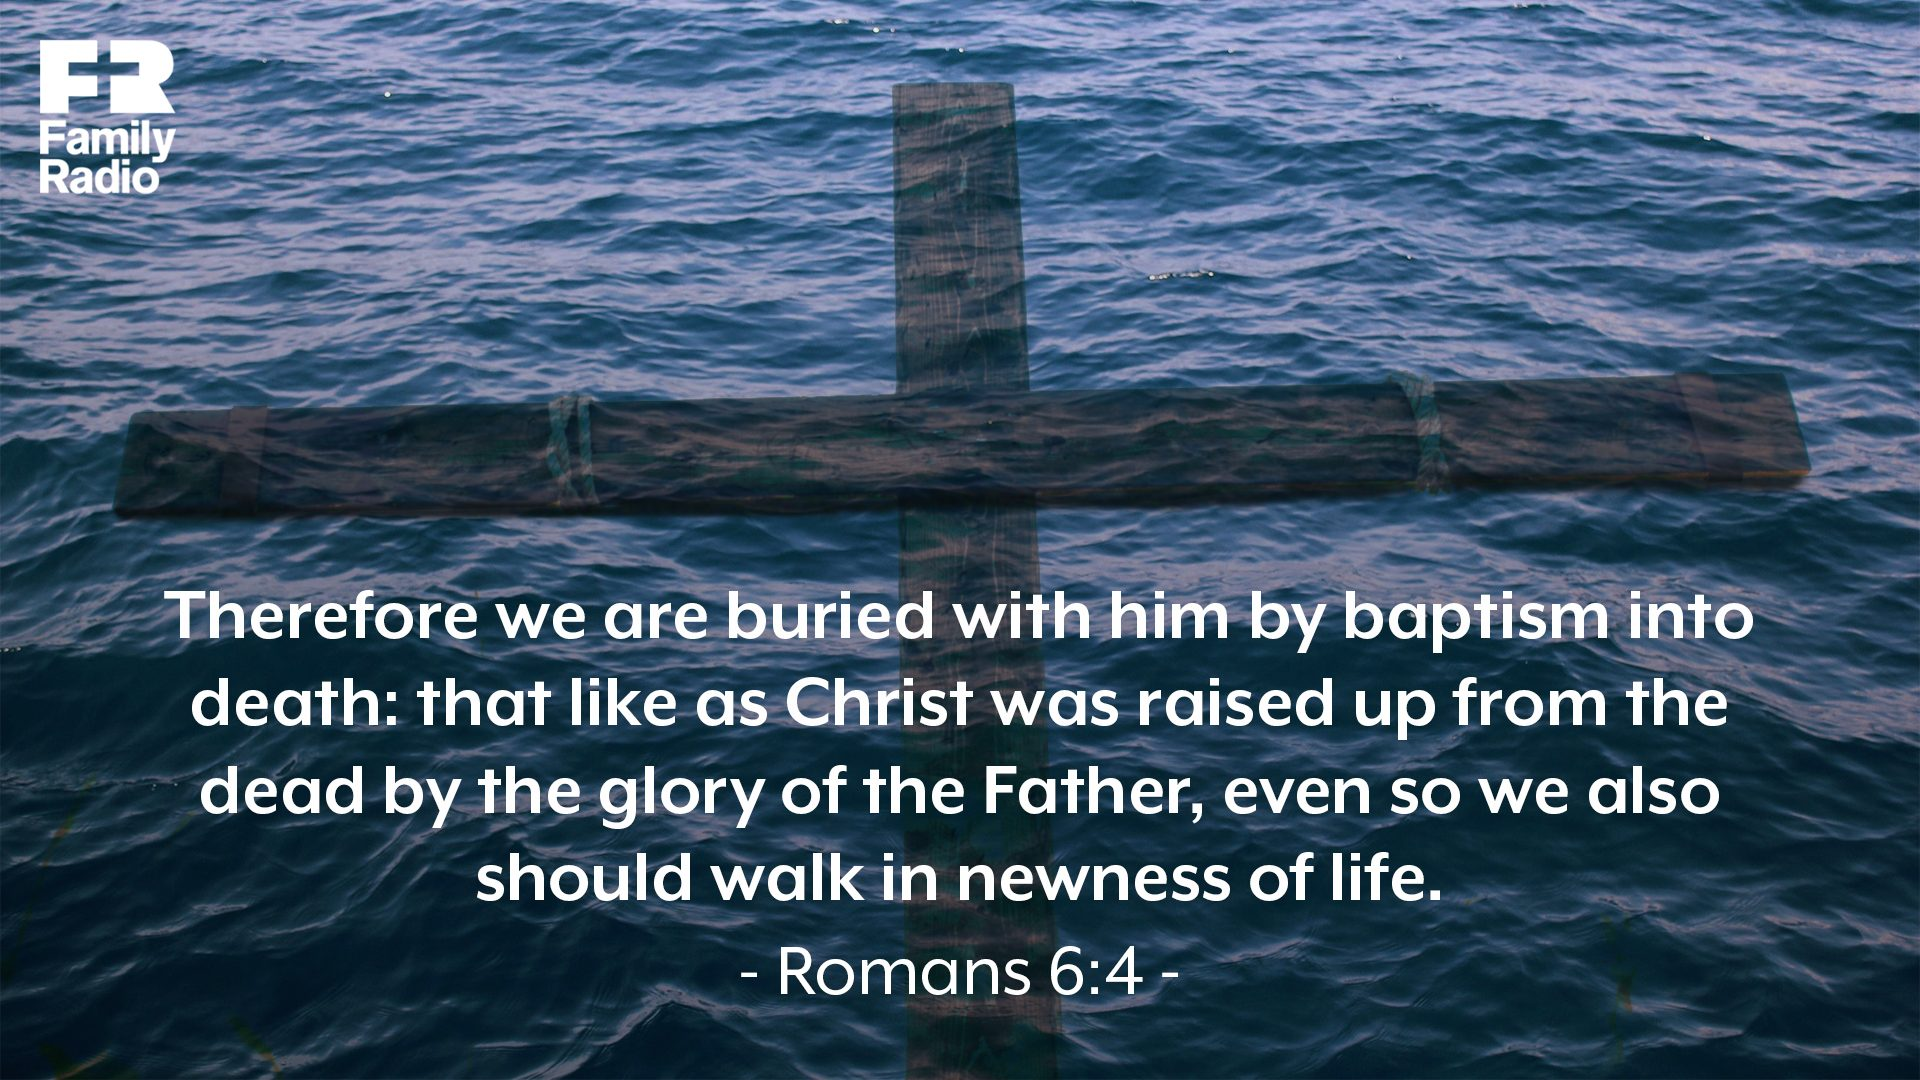 """Therefore we are buried with him by baptism into death: that like as Christ was raised up from the dead by the glory of the Father, even so we also should walk in newness of life."""